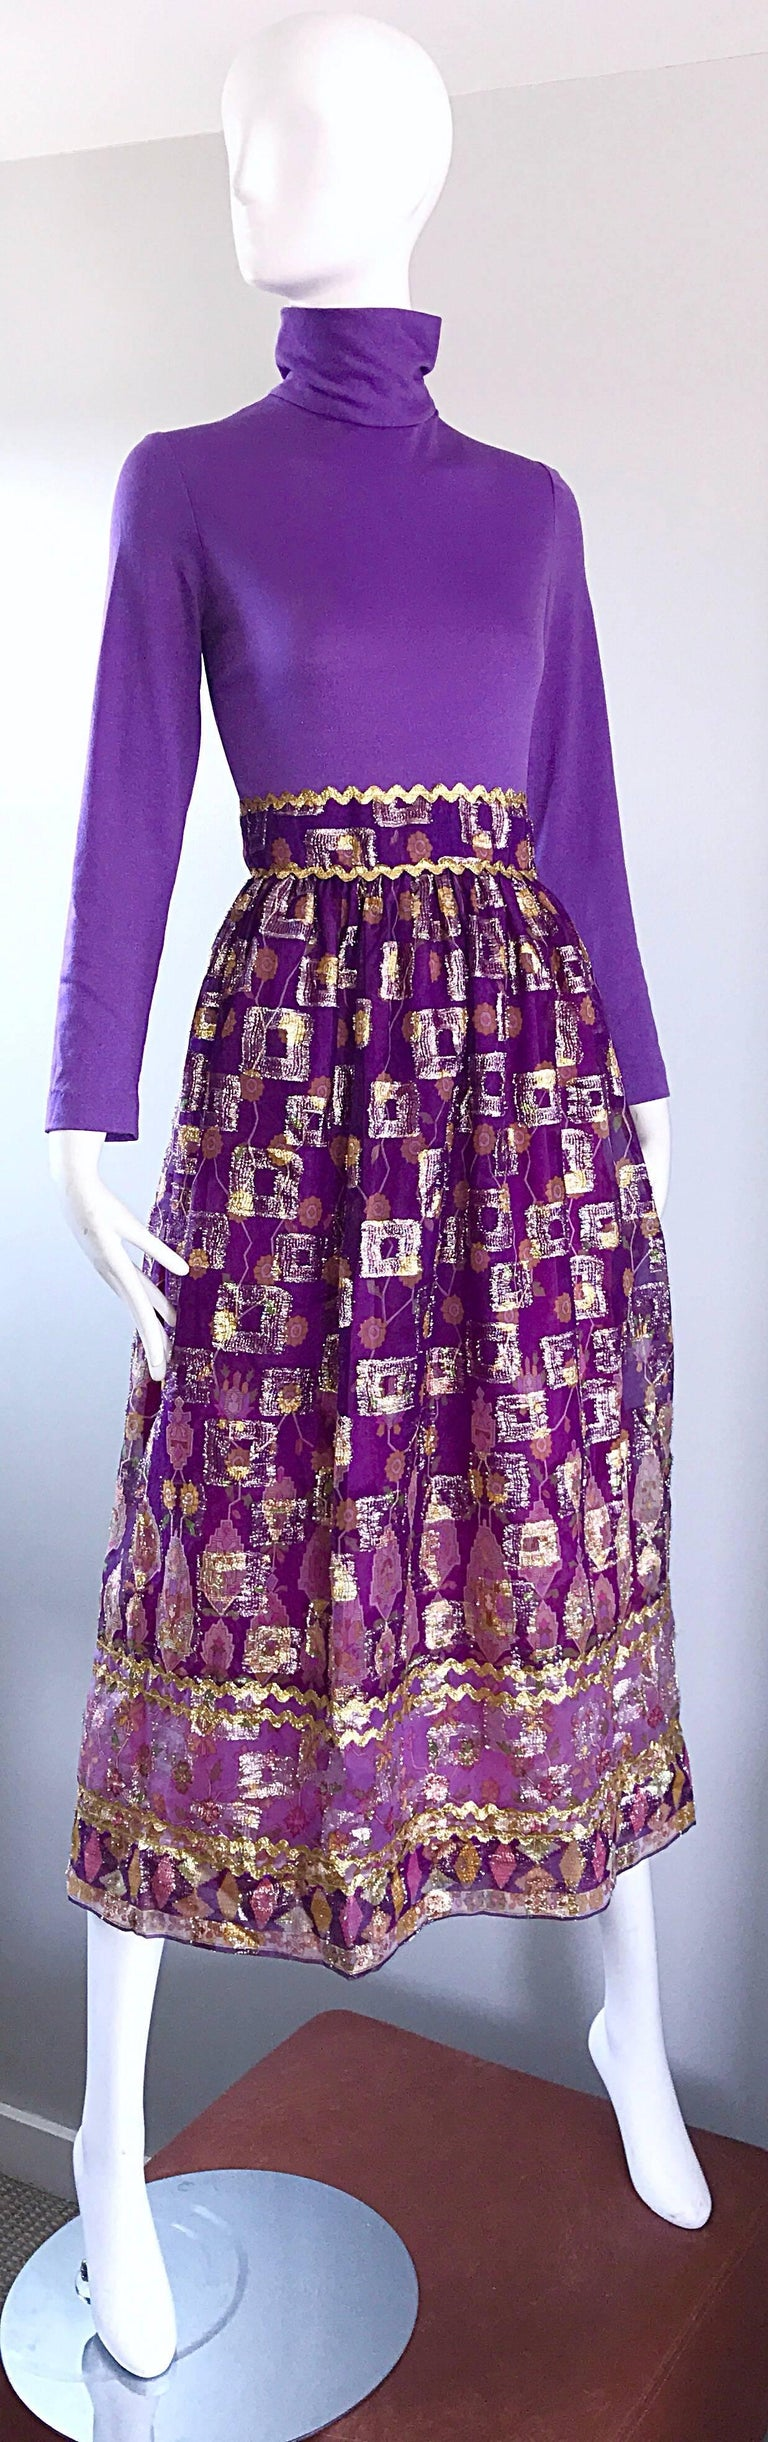 Beautiful 1970s Purple Lavender Ethnic Batik Print High Neck Vintage Midi Dress For Sale 5